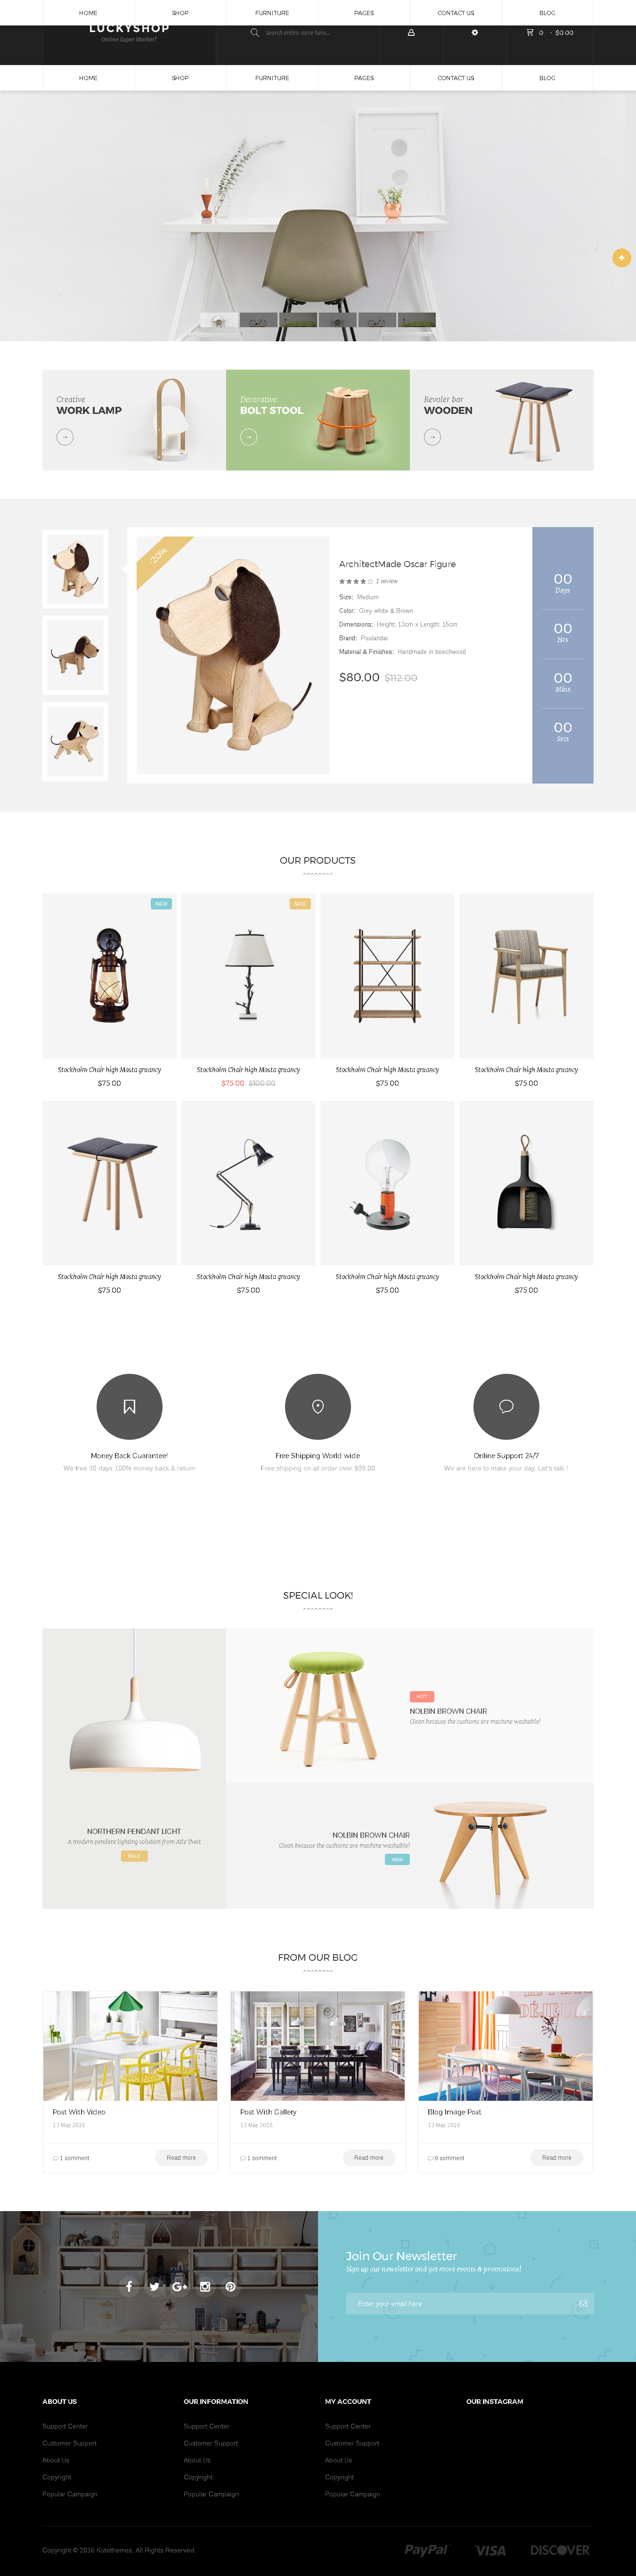 5 Best SHOPIFY Premium themes collection for Furniture Store 2017 - Lucky - Multipurpose Responsive Shopify Theme